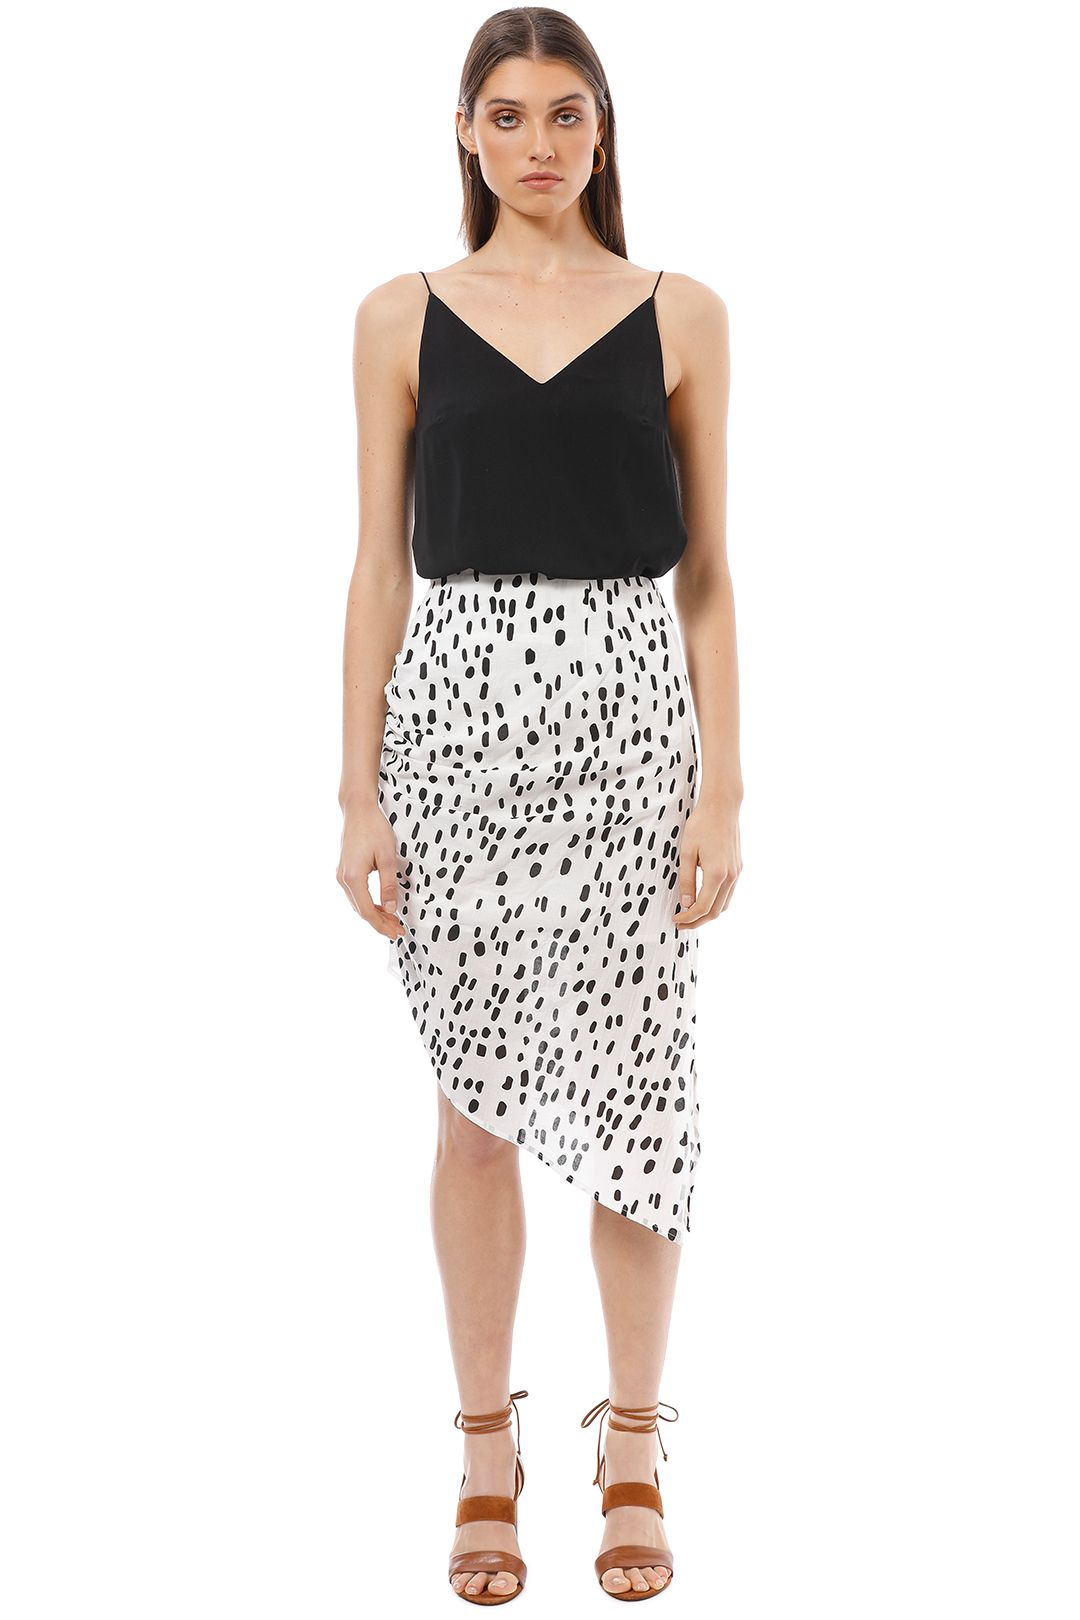 Friend of Audrey - Lucie Ruched Polka Dot Skirt - Black White - Front